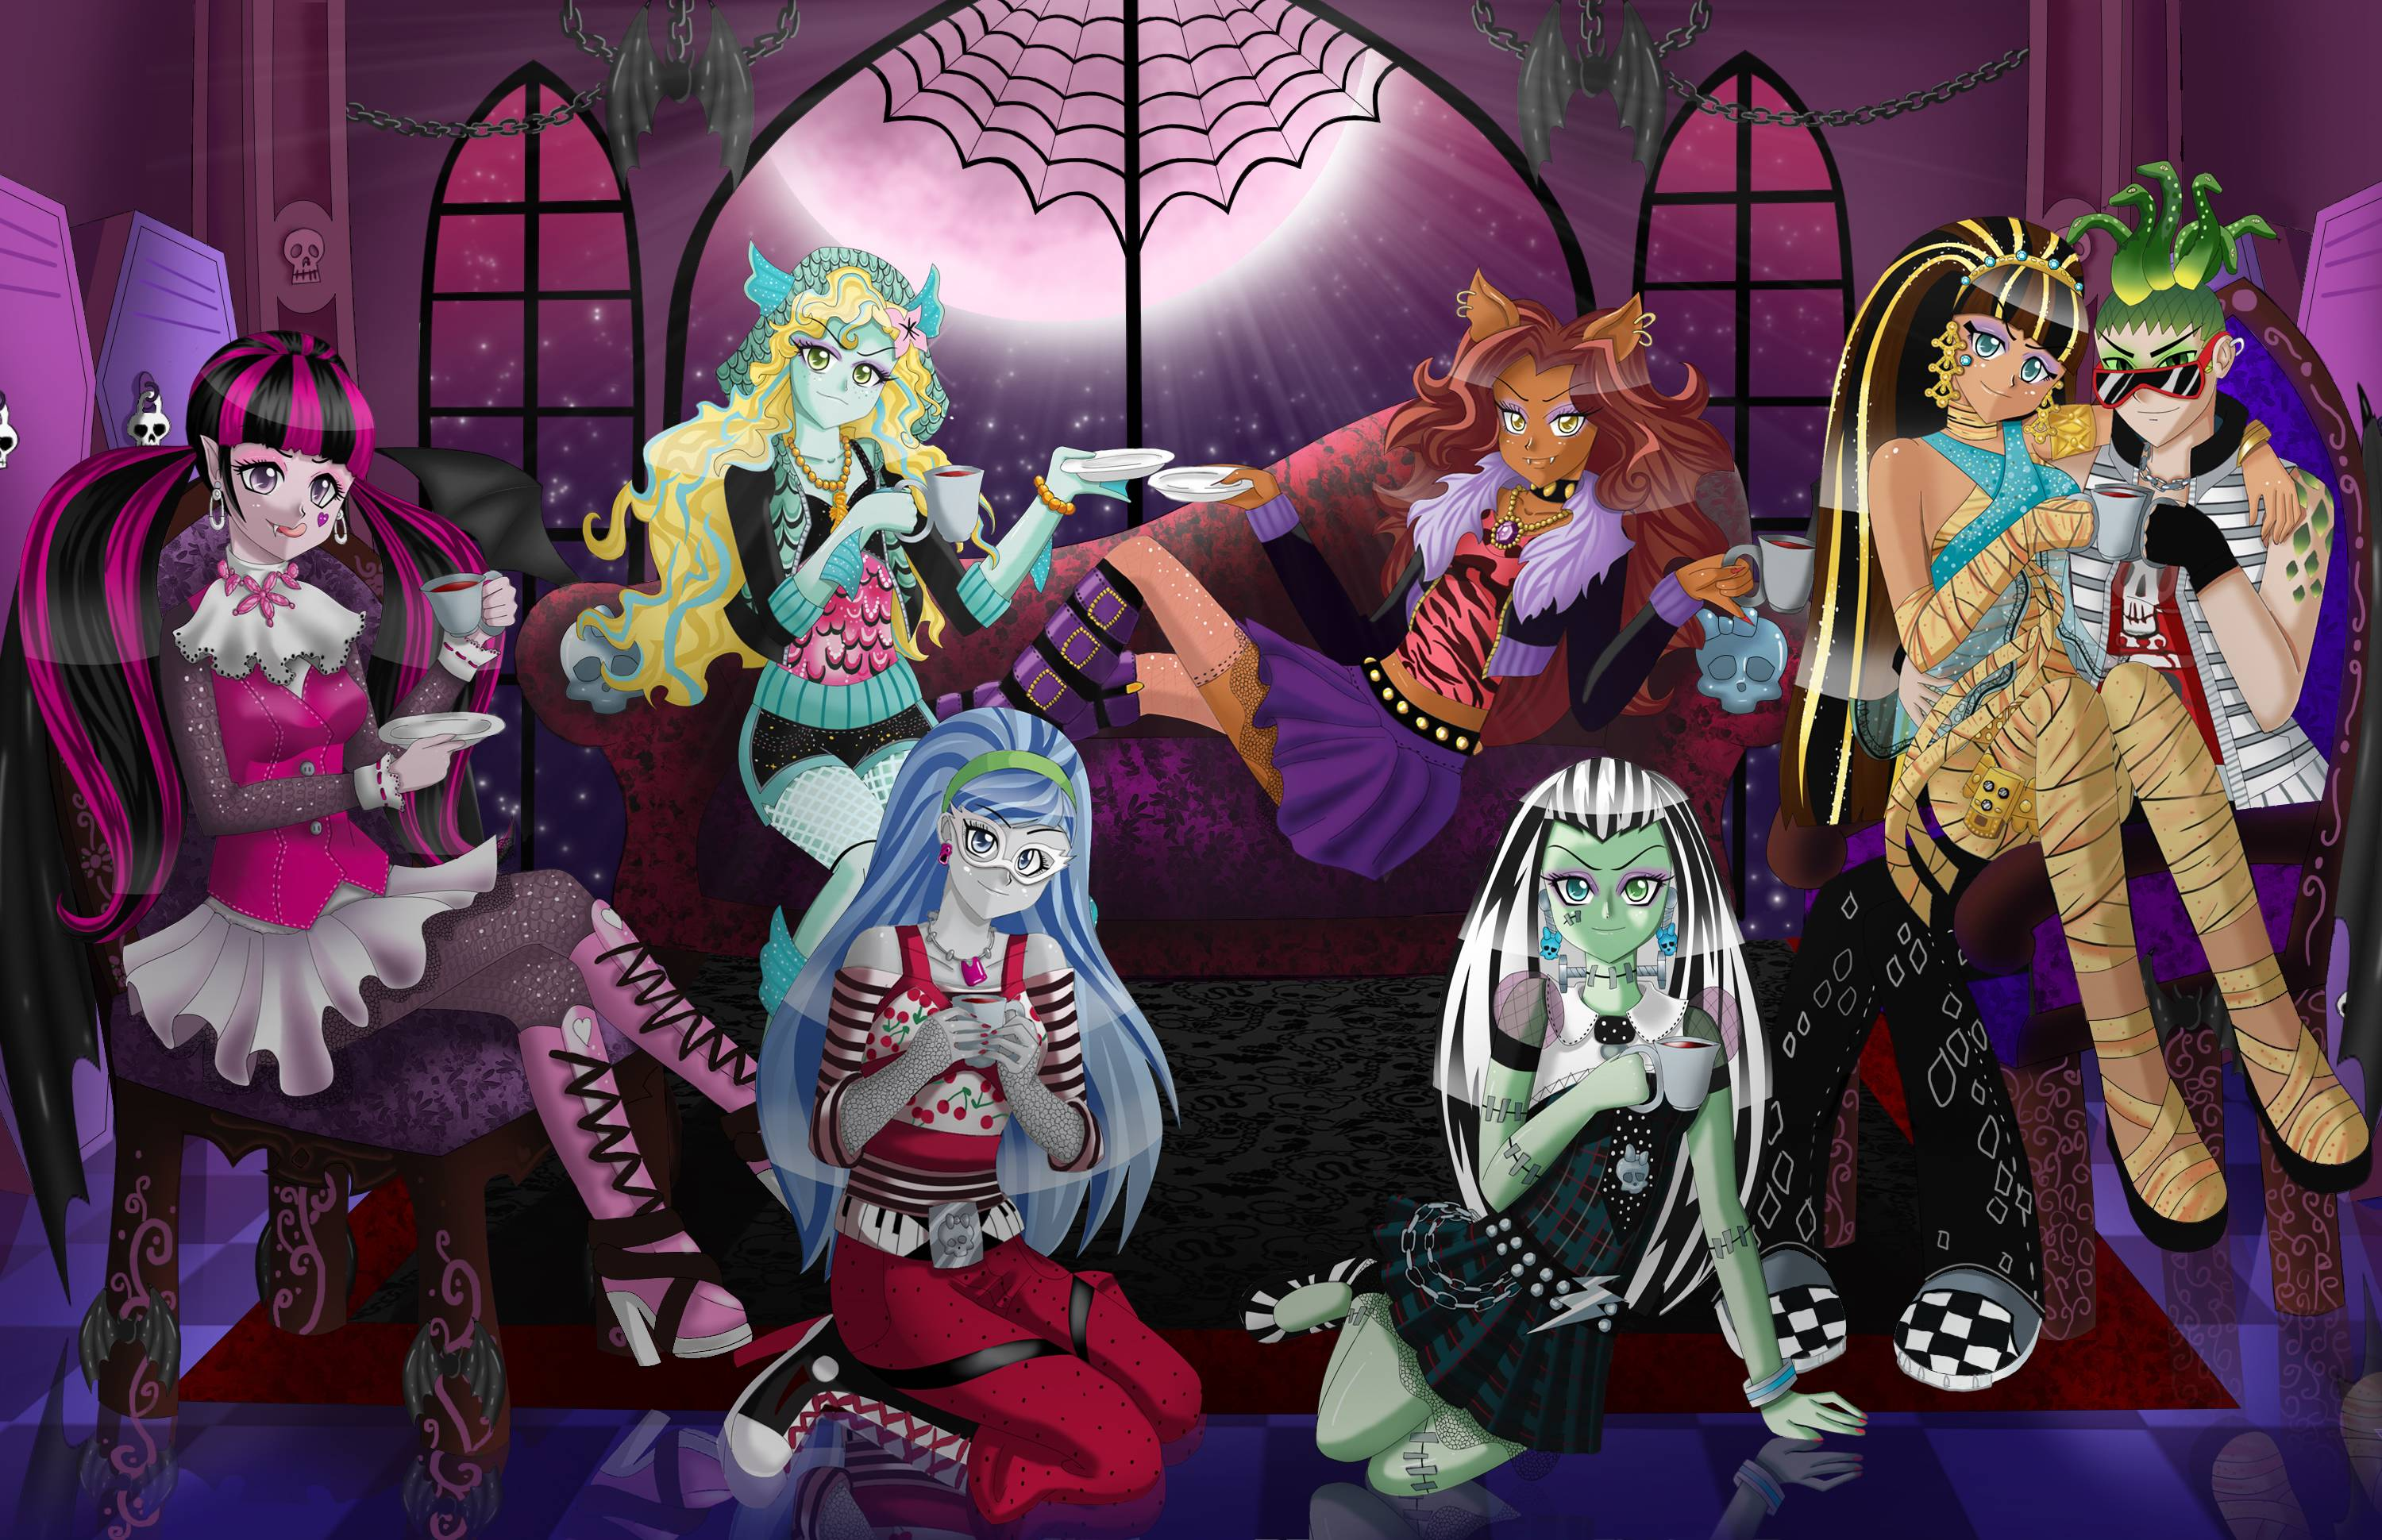 Fondo de pantalla de las monster high